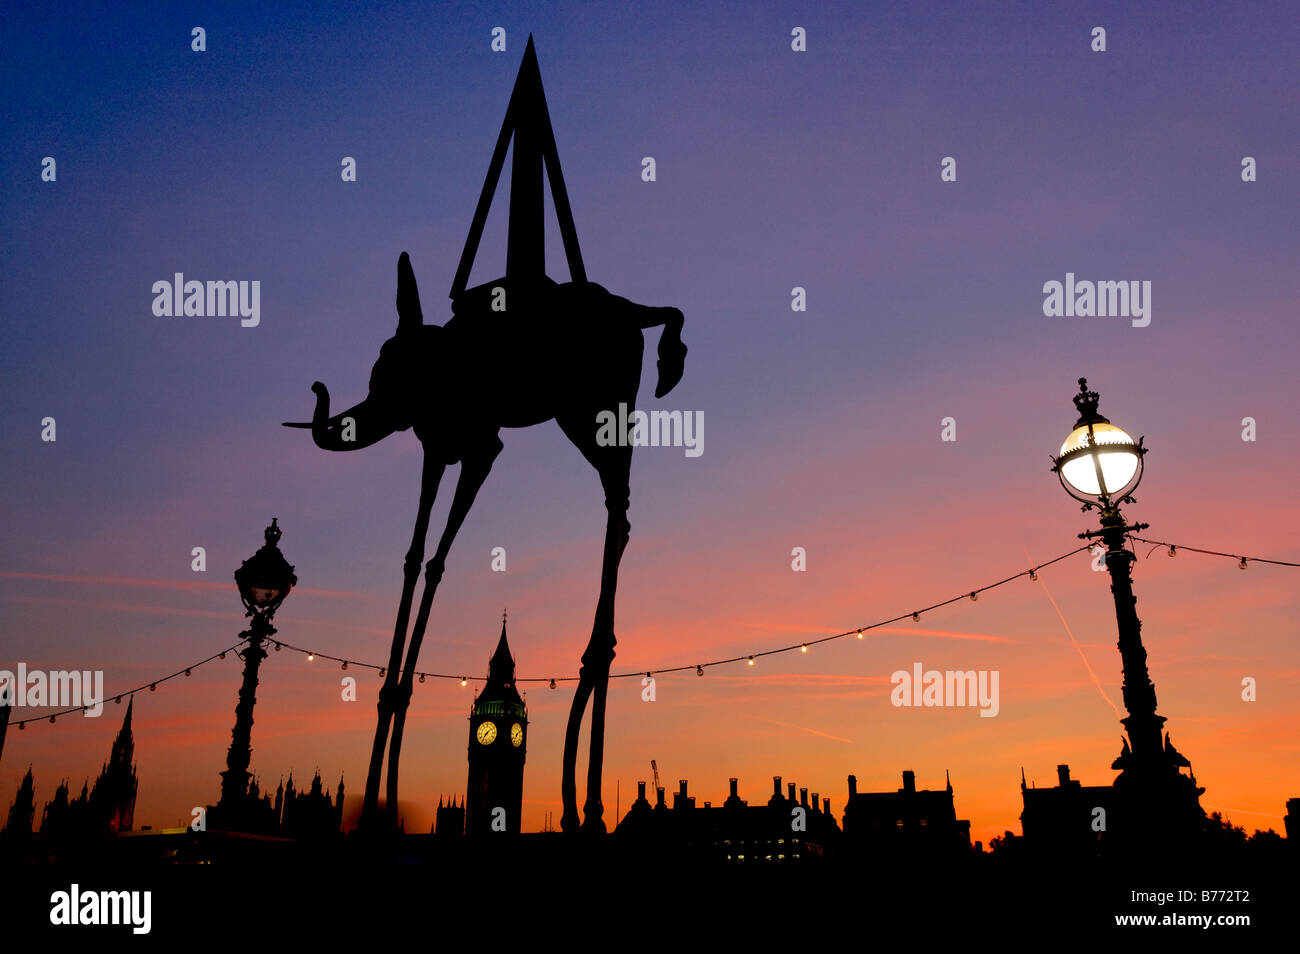 a-statue-of-salvador-dali-space-elephant-and-big-ben-silhouetted-against-B772T2.jpg